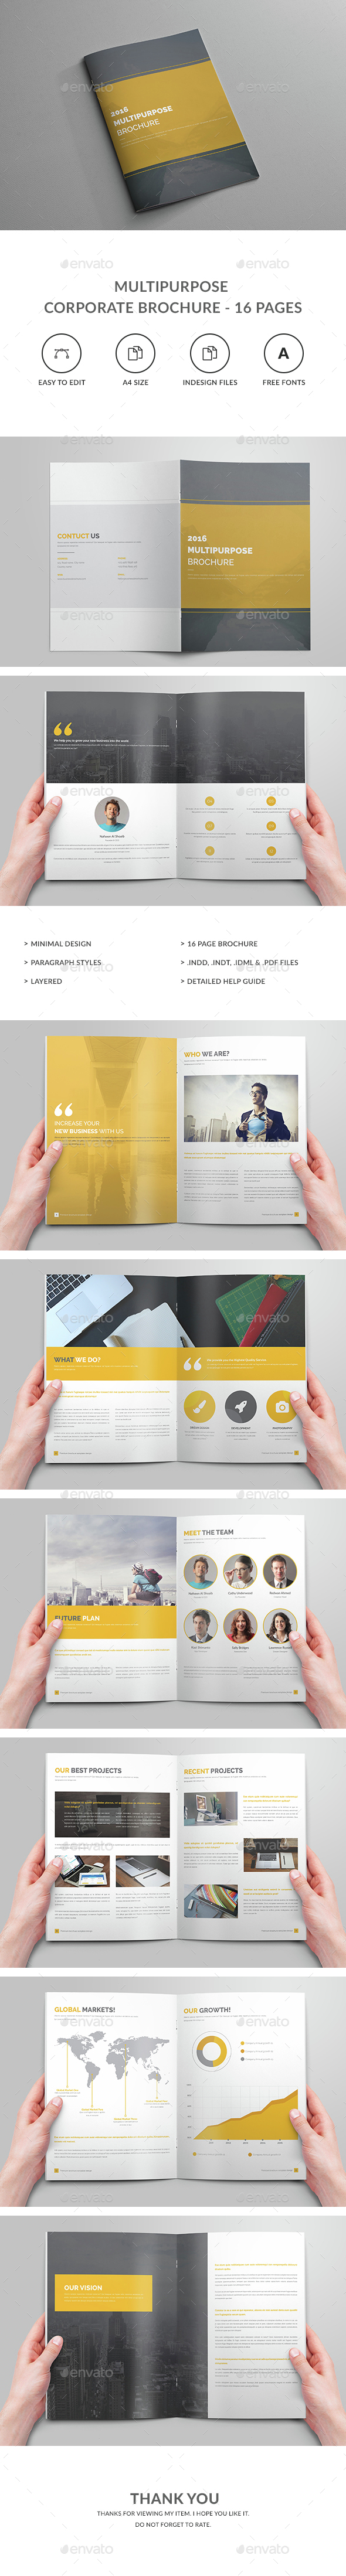 Multipurpose Brochure – 16 Pages - Corporate Brochures